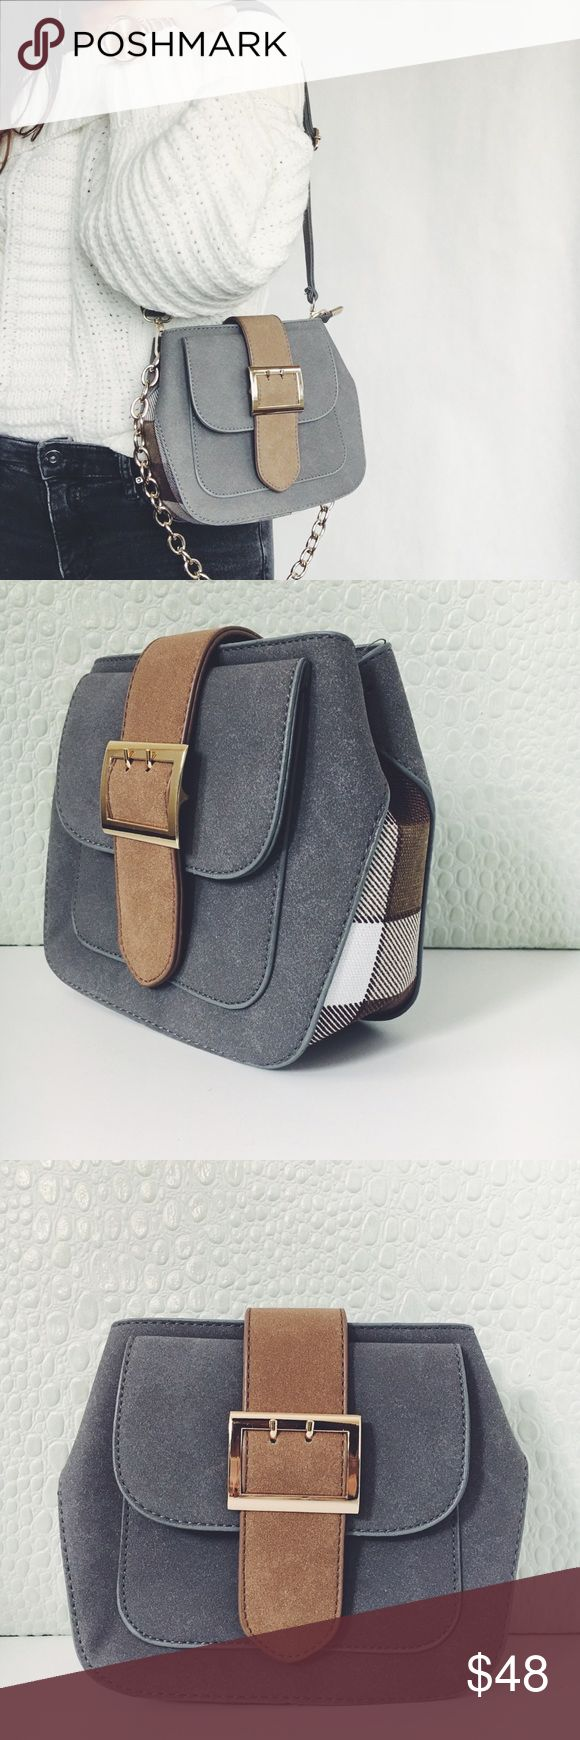 New! Gray & Plaid Vegan Leather Buckle Bag NWT Boutique Item. Such a classic, with a touch of plaid! This is a gray & brown vegan Leather handbag with gold hardware. This cutie features a PU fabric that has a very soft feel, a plaid design on the sides/bottom, Vegan Leather & gold chain link strap, versatile silhouette (crossbody or shoulder), lining, outside Faux pocket (not an actual pocket), and one inside zipper pocket. Measurement: 8.5 x 7 x 3 inches. Material: Vegan Leather, Alloy…